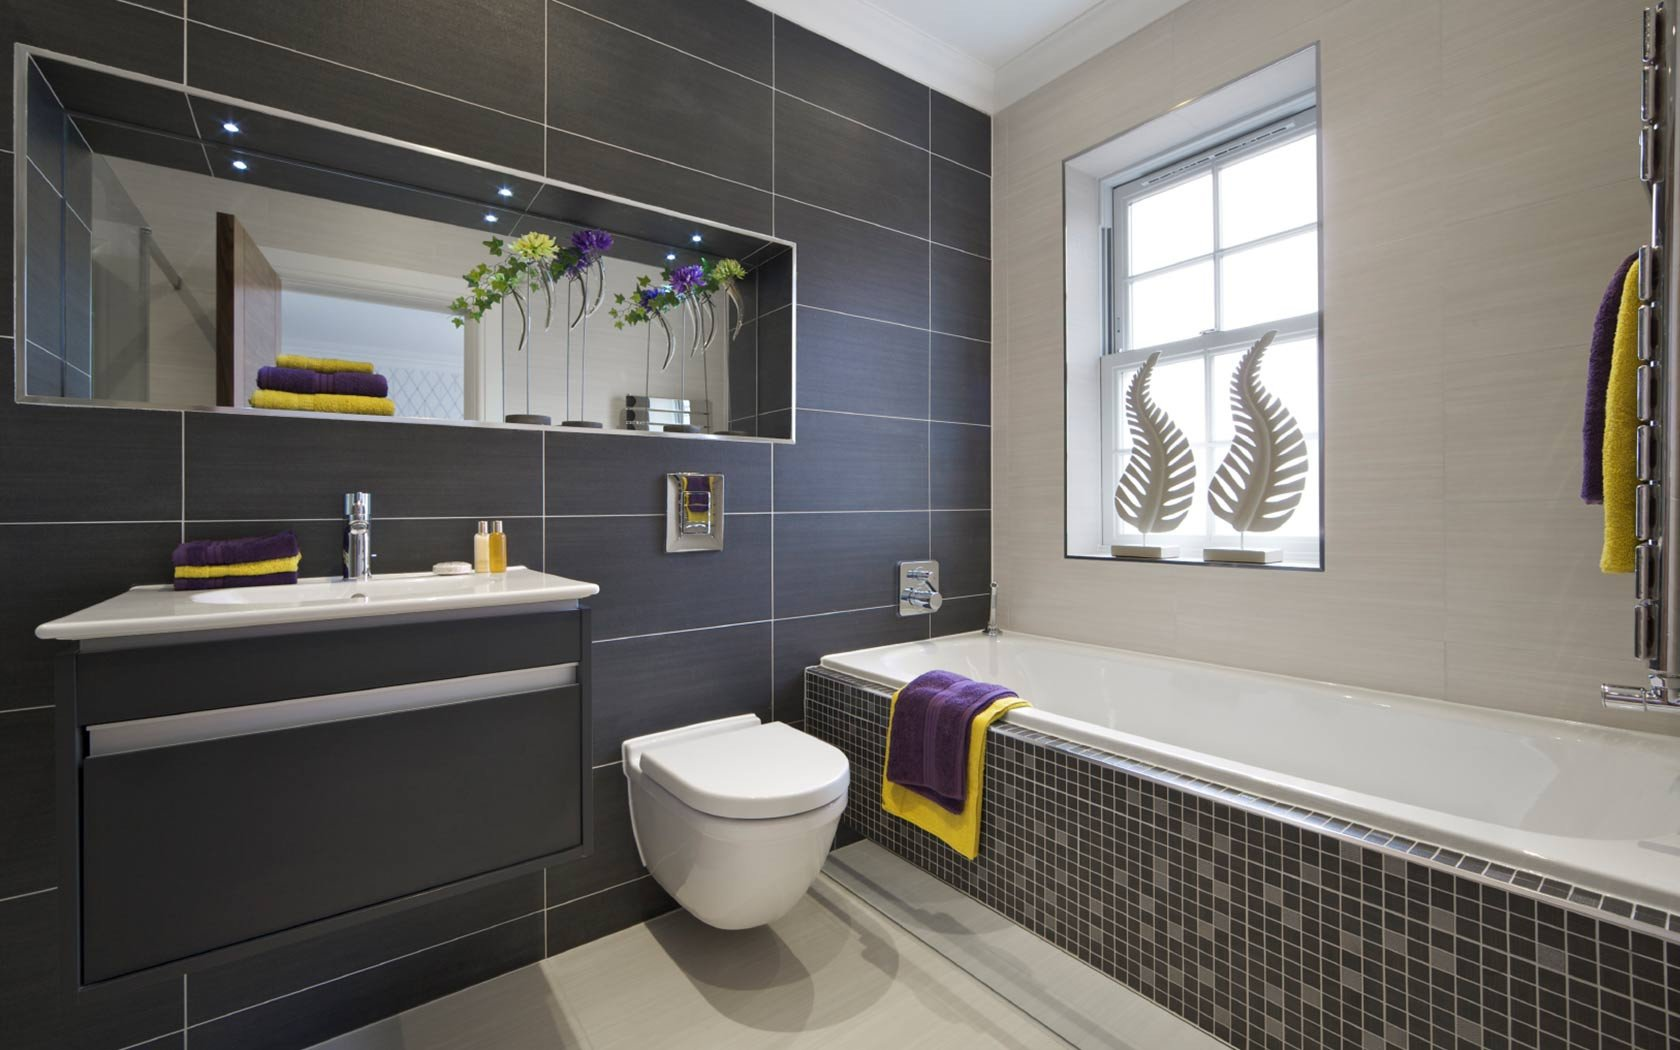 Black and Gray Bathroom Decor New Grey Bathroom Ideas the Classic Color In Great solutions Interior Design Inspirations